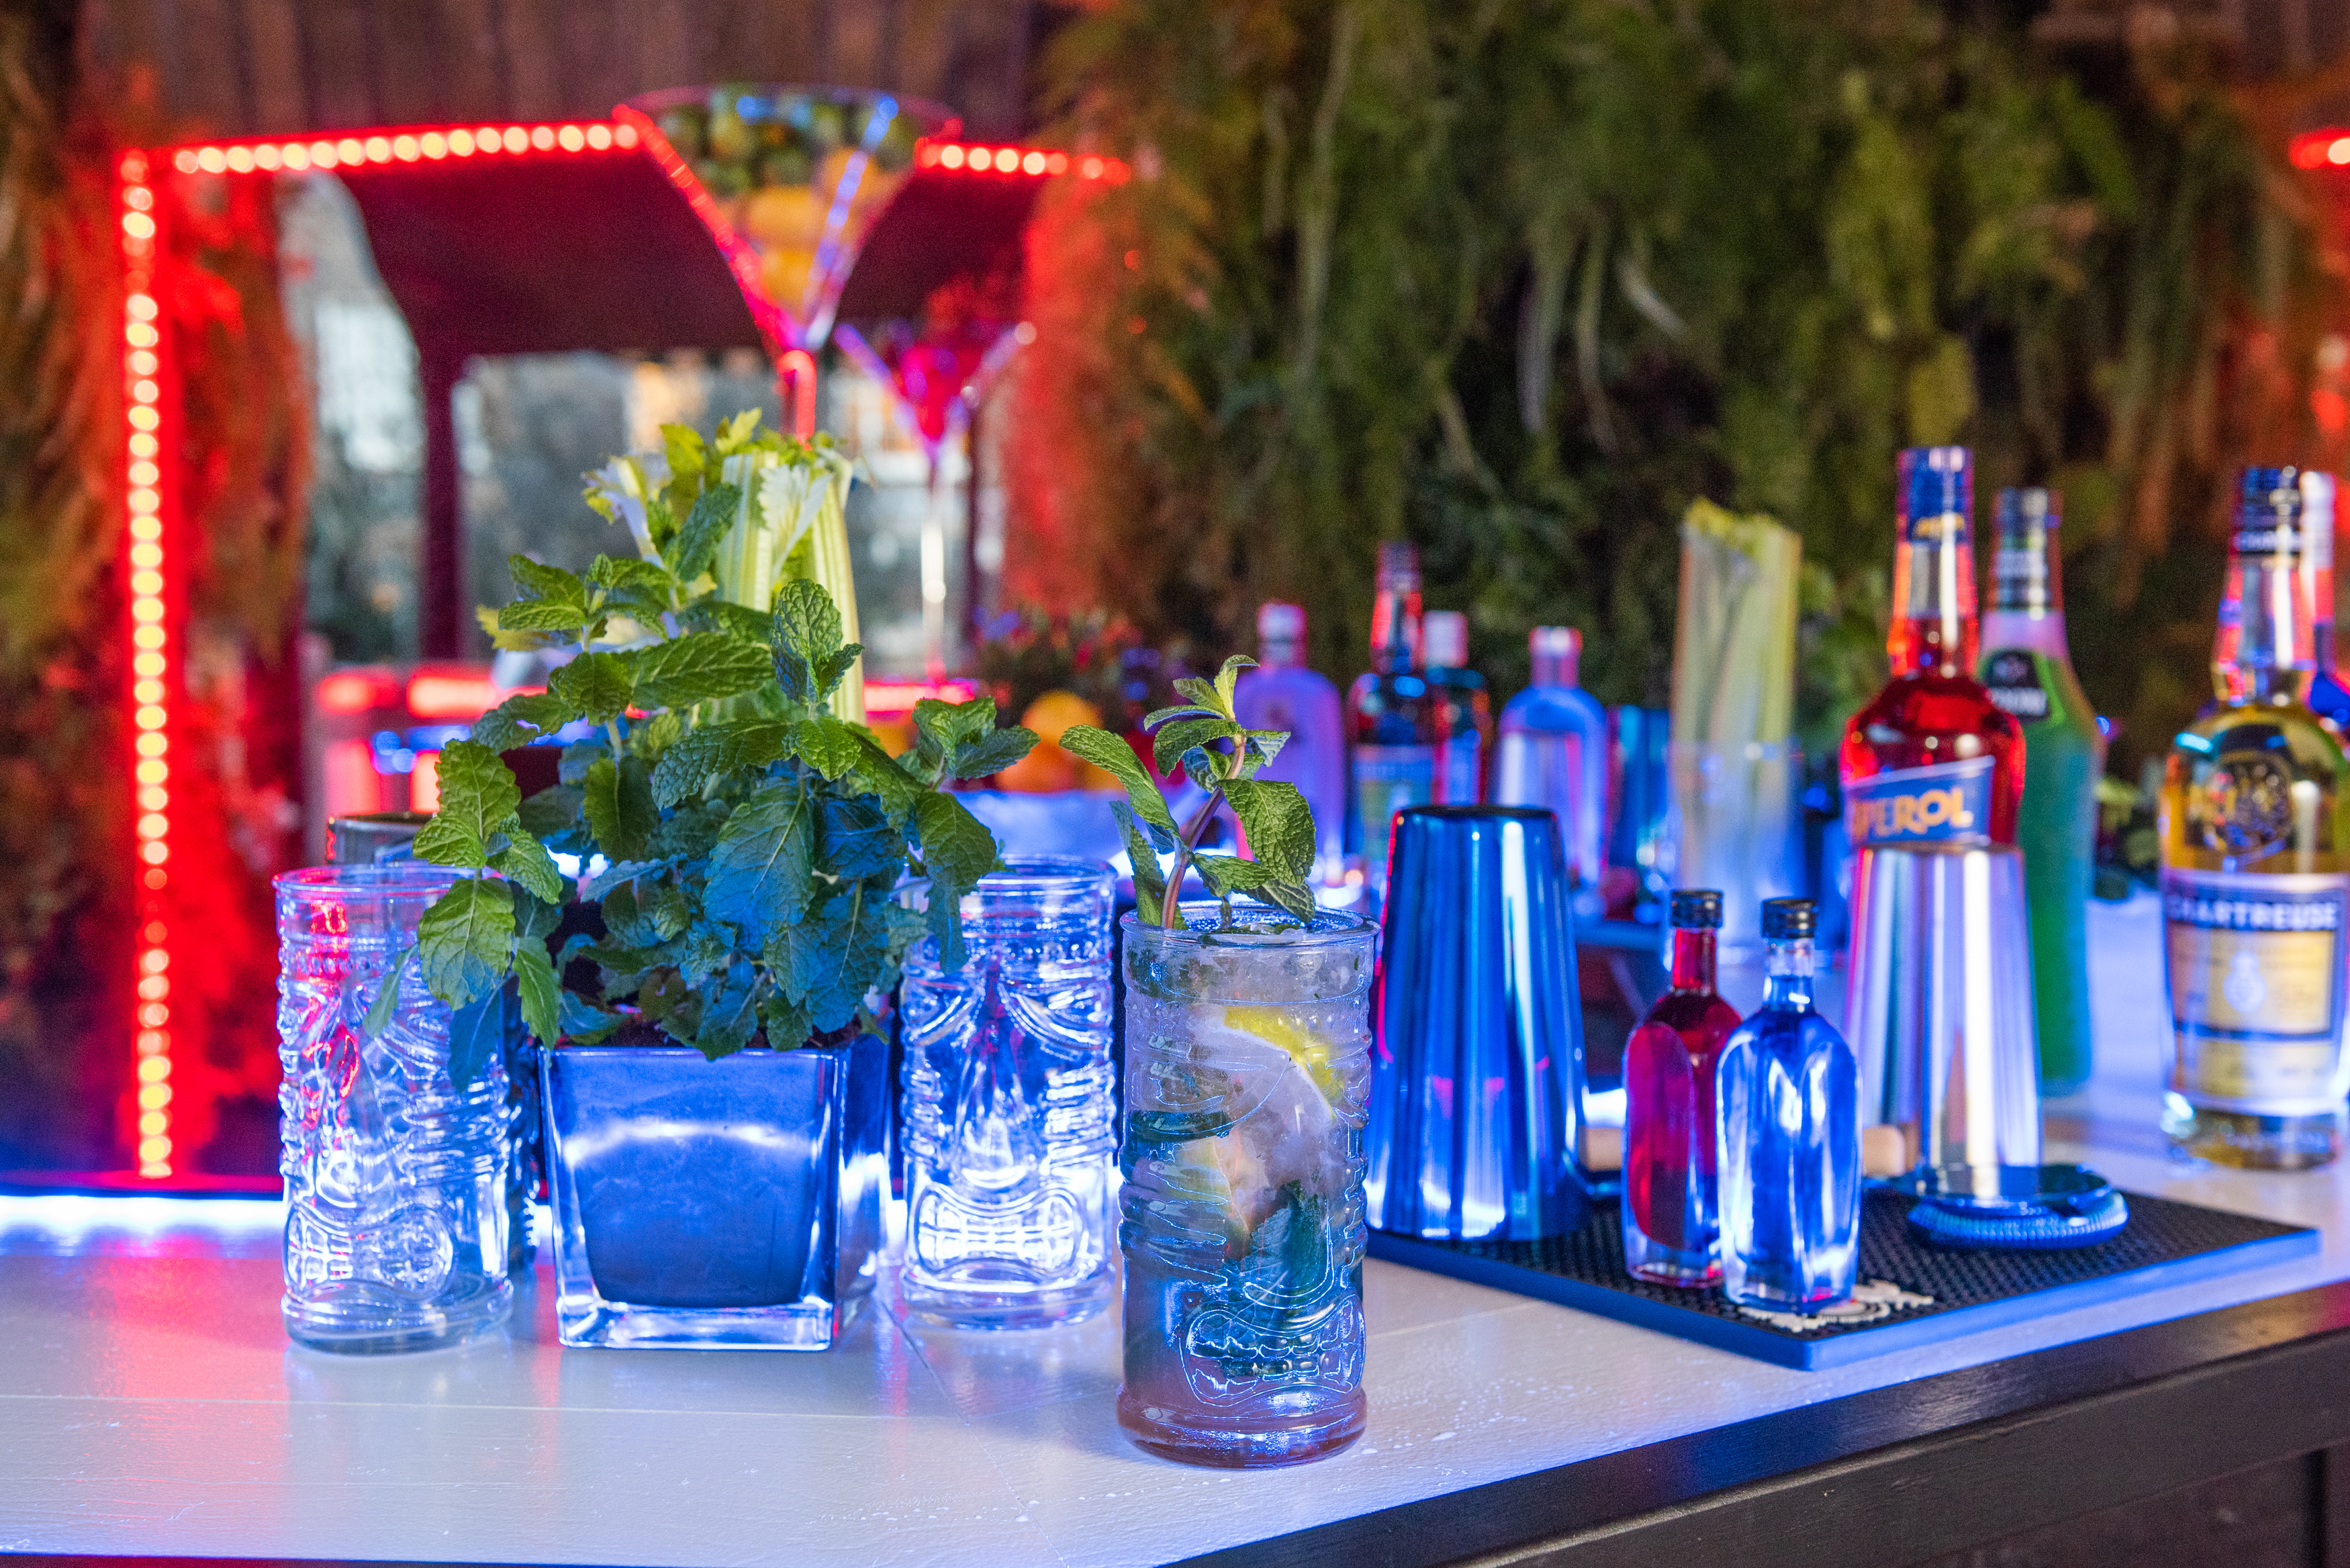 The Montague on the Gardens Mix It Bar